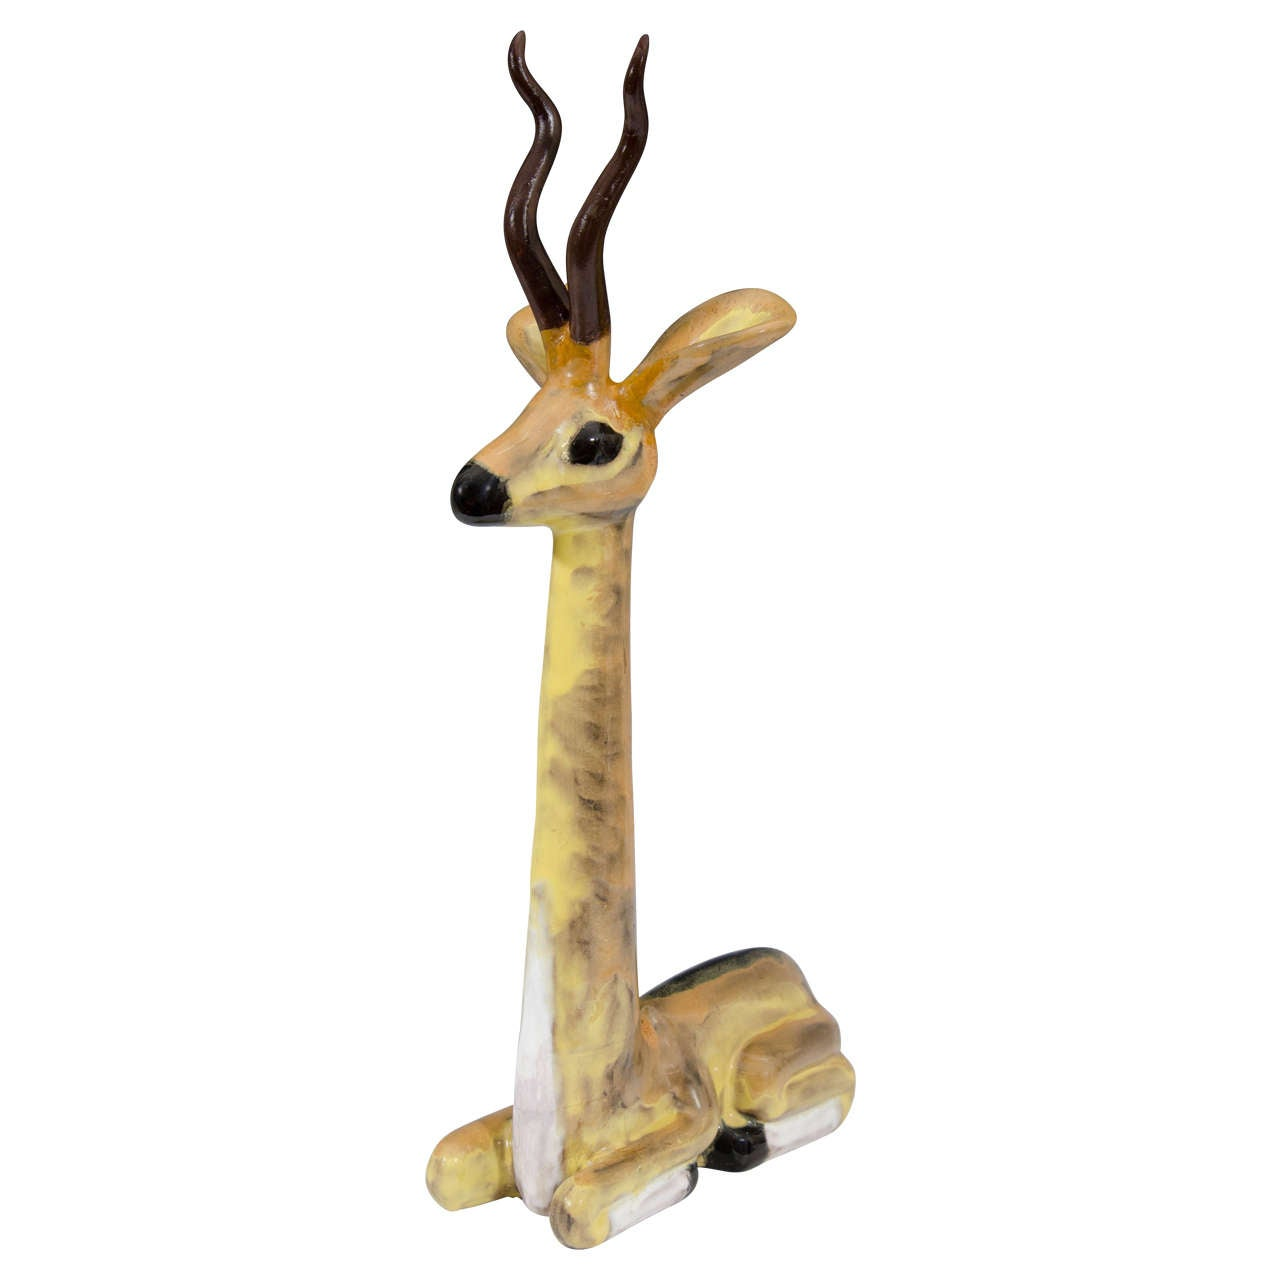 A Midcentury Ceramic Sculpture of a Seated Antelope